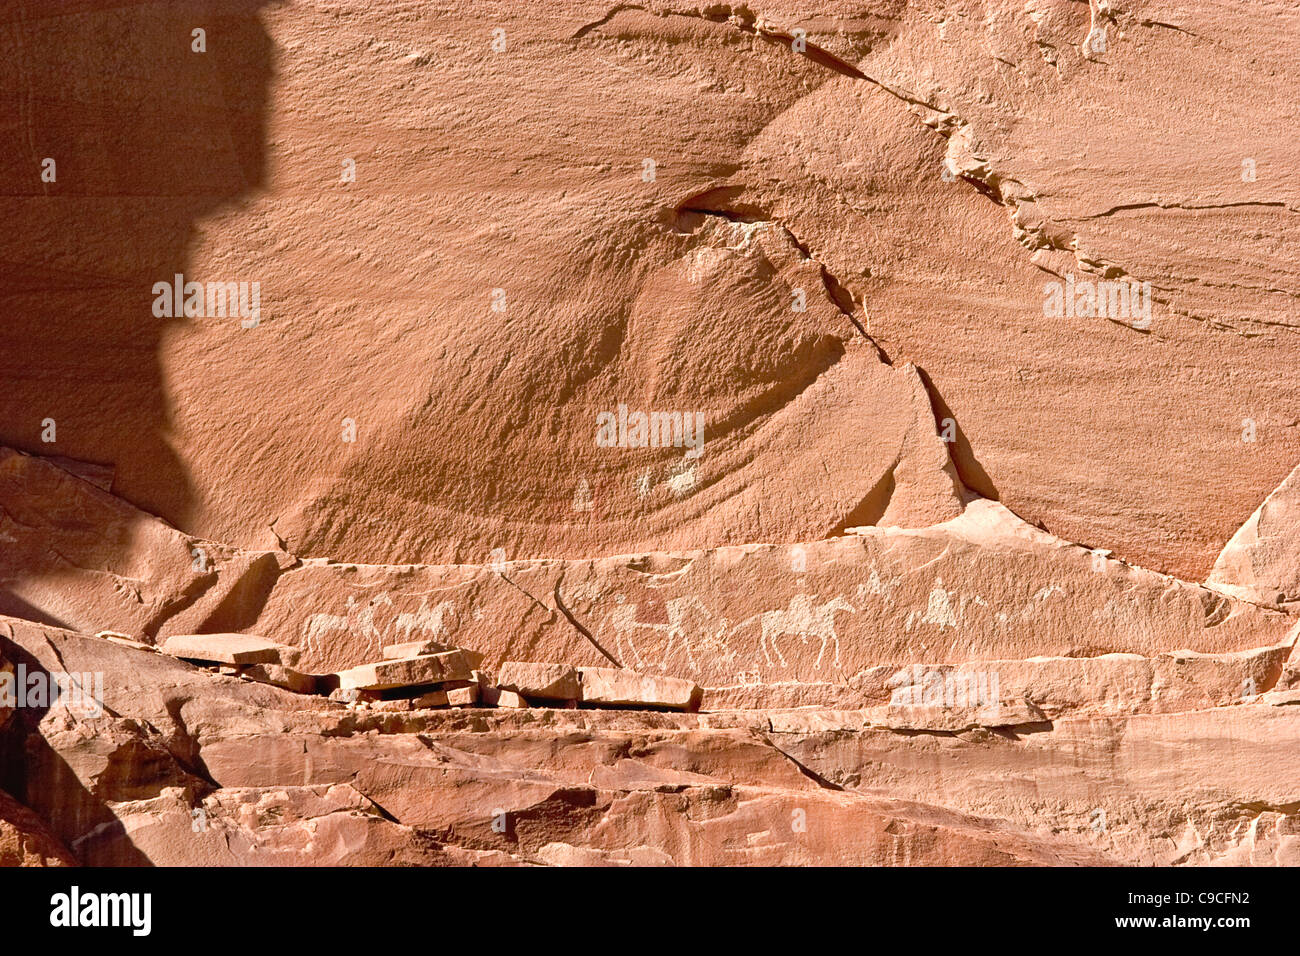 Stone Drawings Stock Photos Amp Stone Drawings Stock Images Alamy